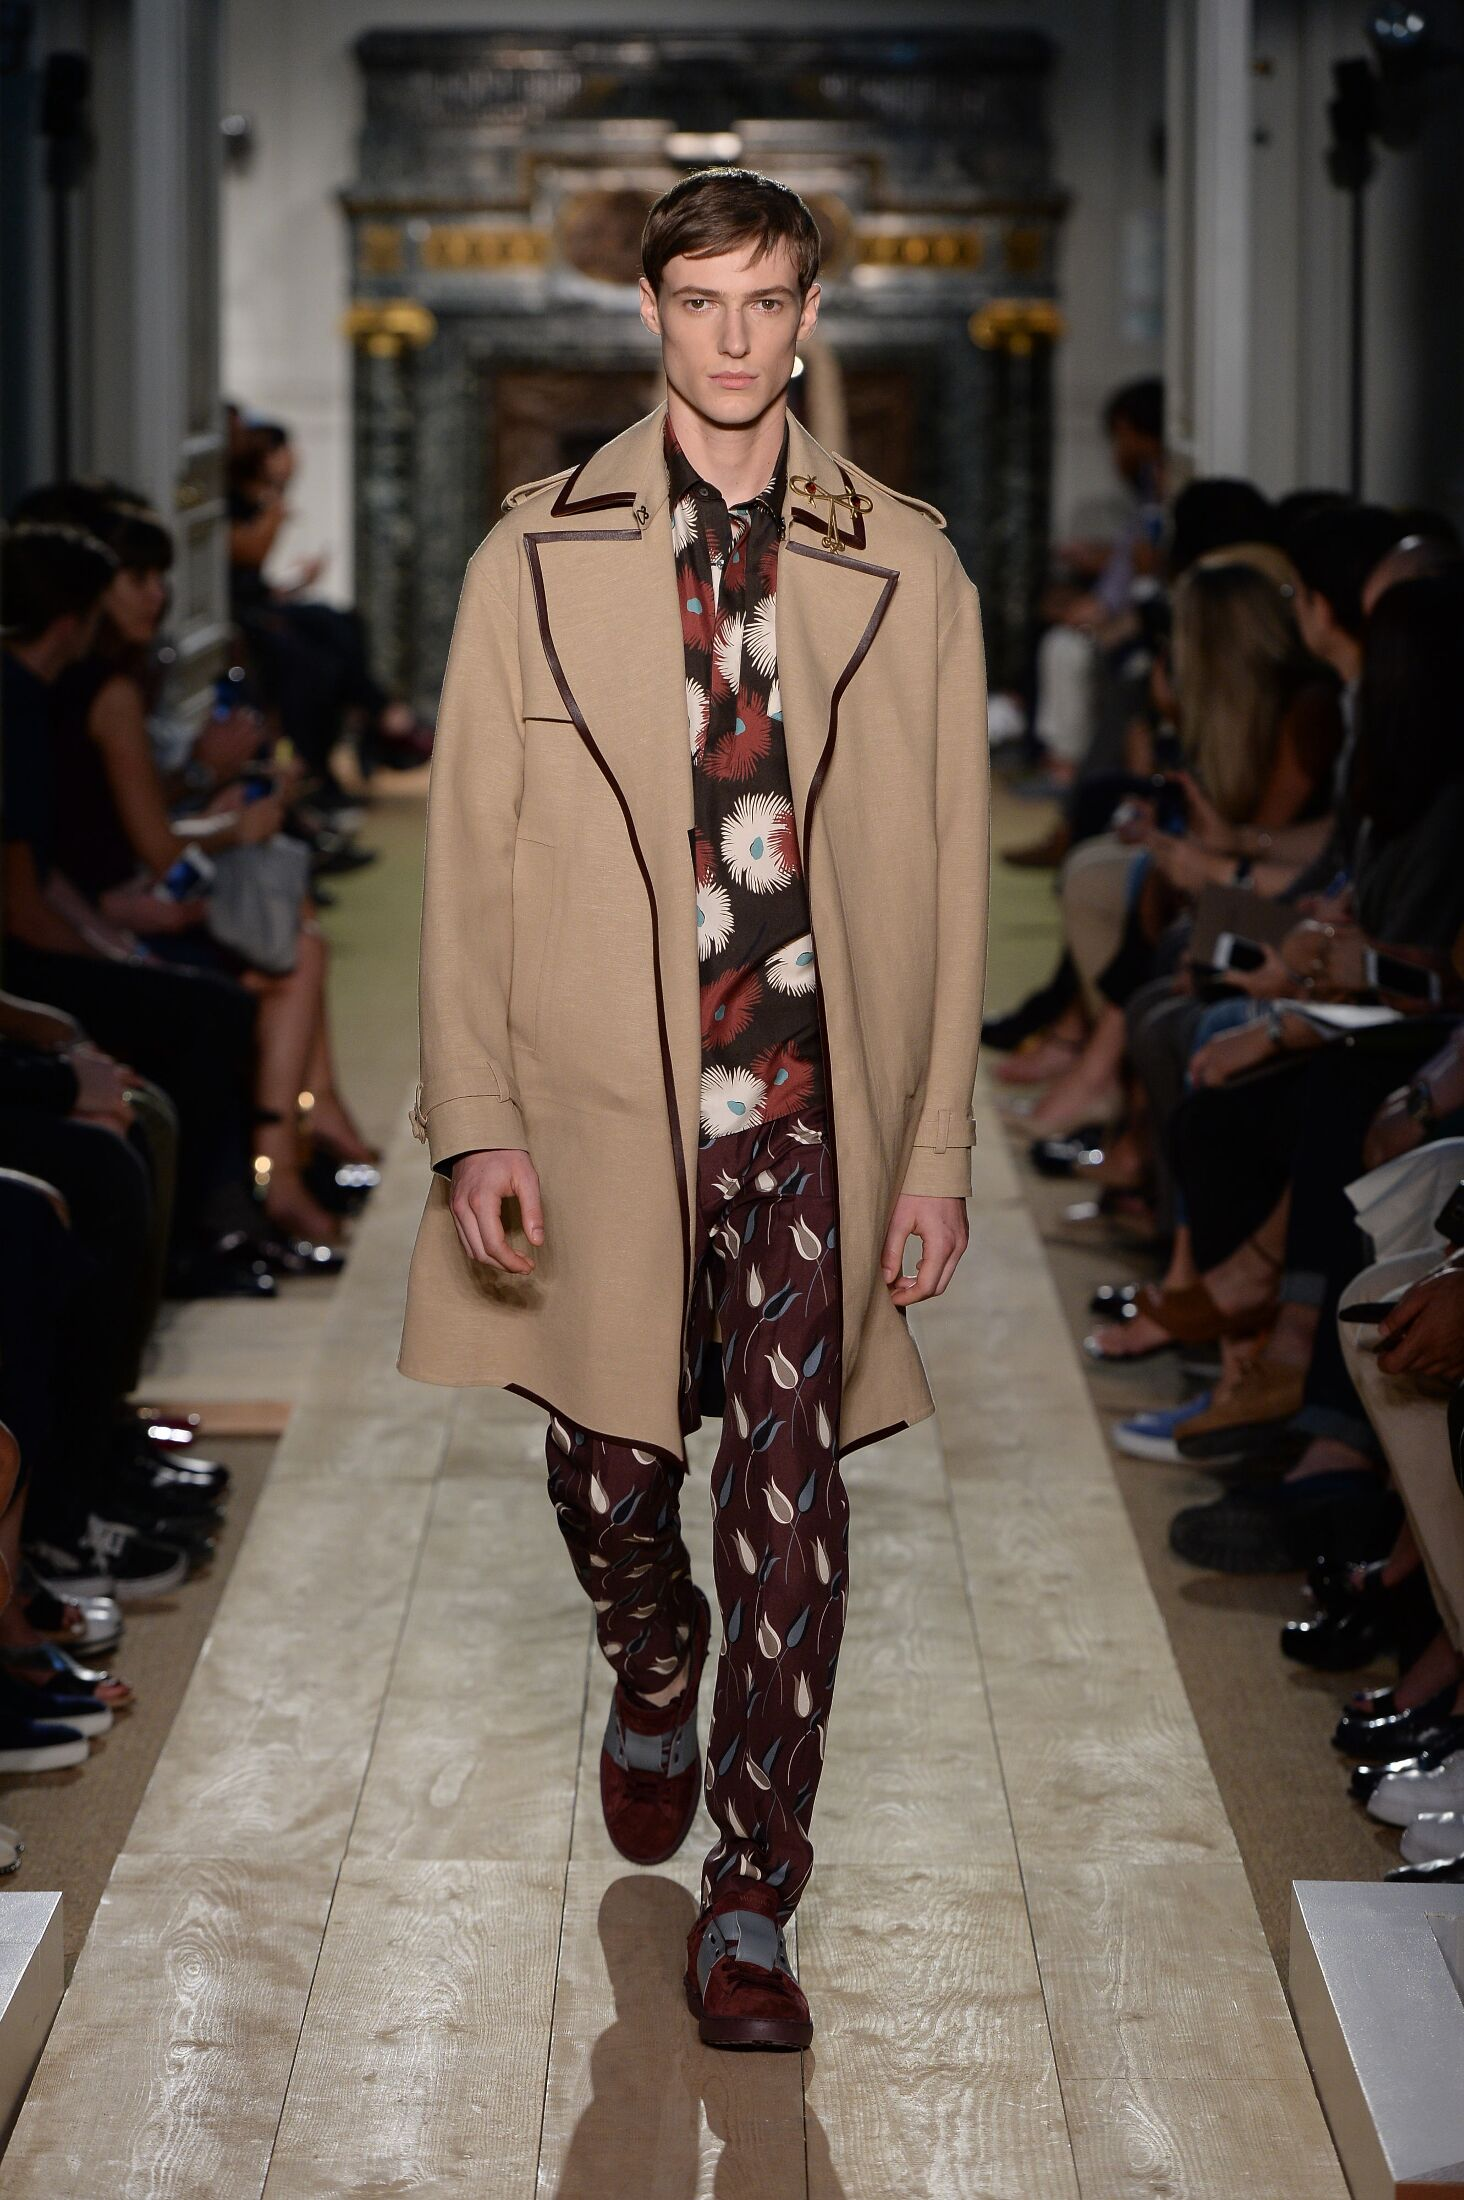 VALENTINO SPRING SUMMER 2015 MENS COLLECTION  The Skinny